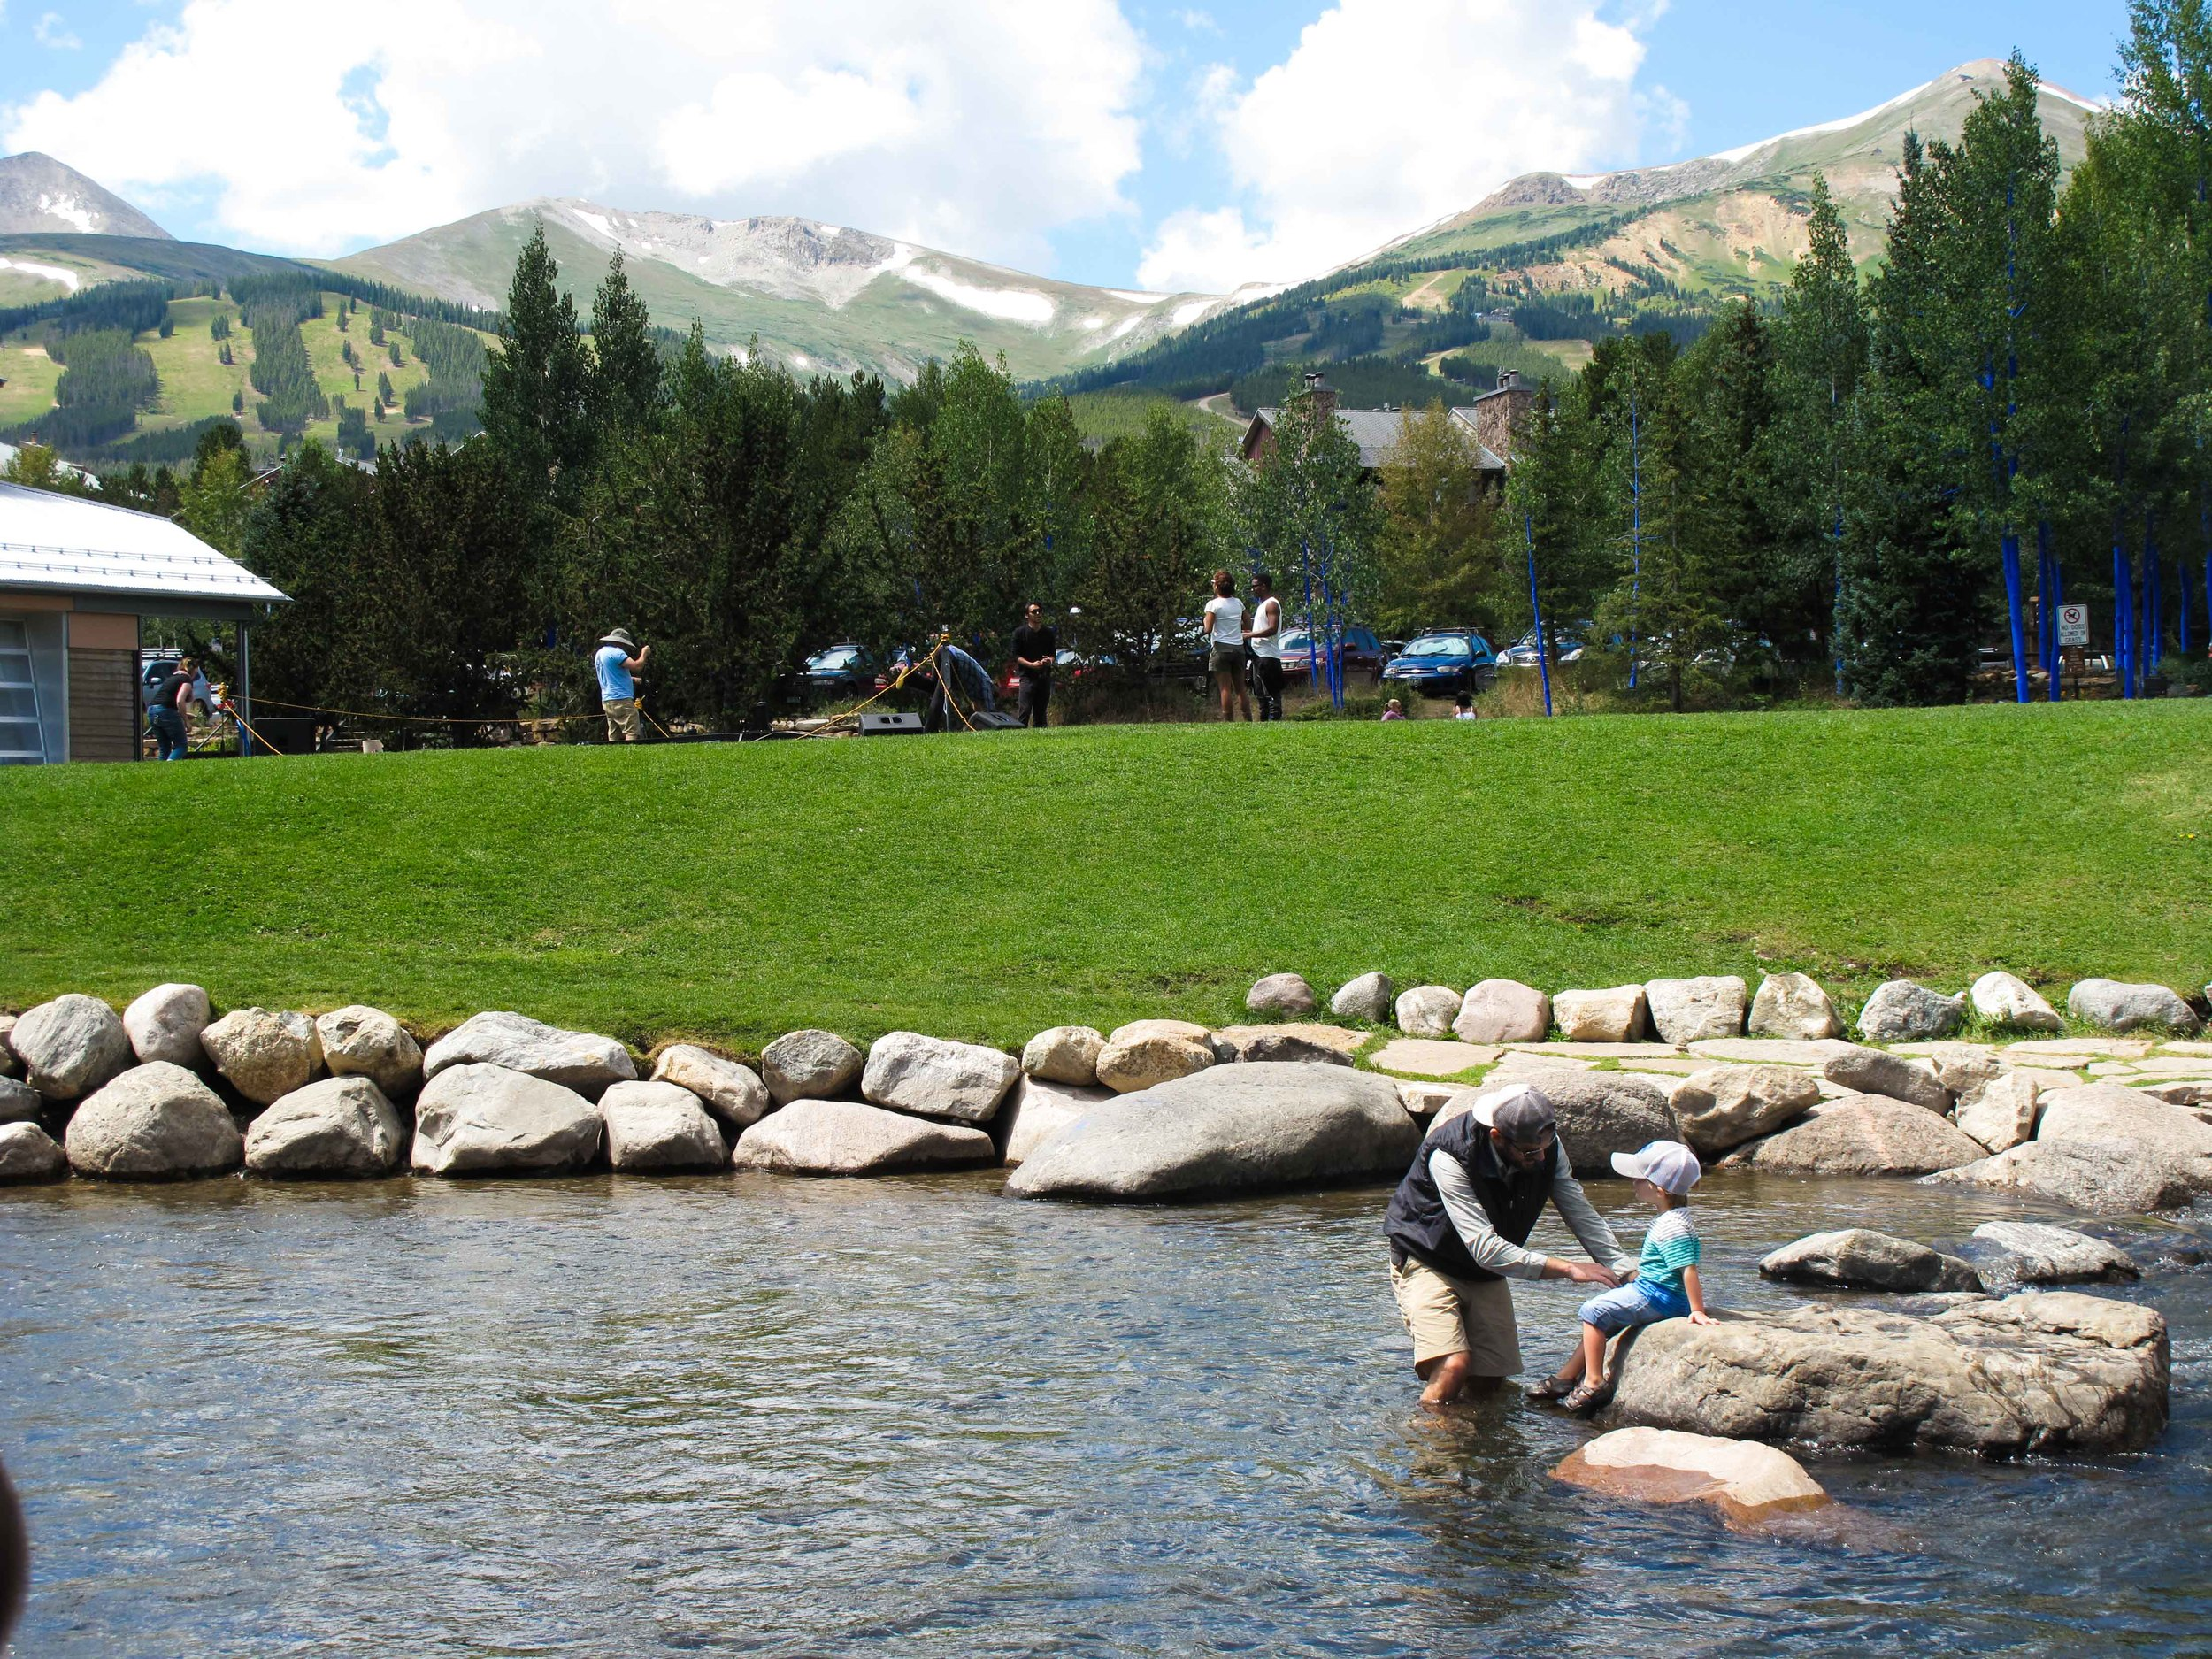 20150817_Colorado_Web_232.jpg